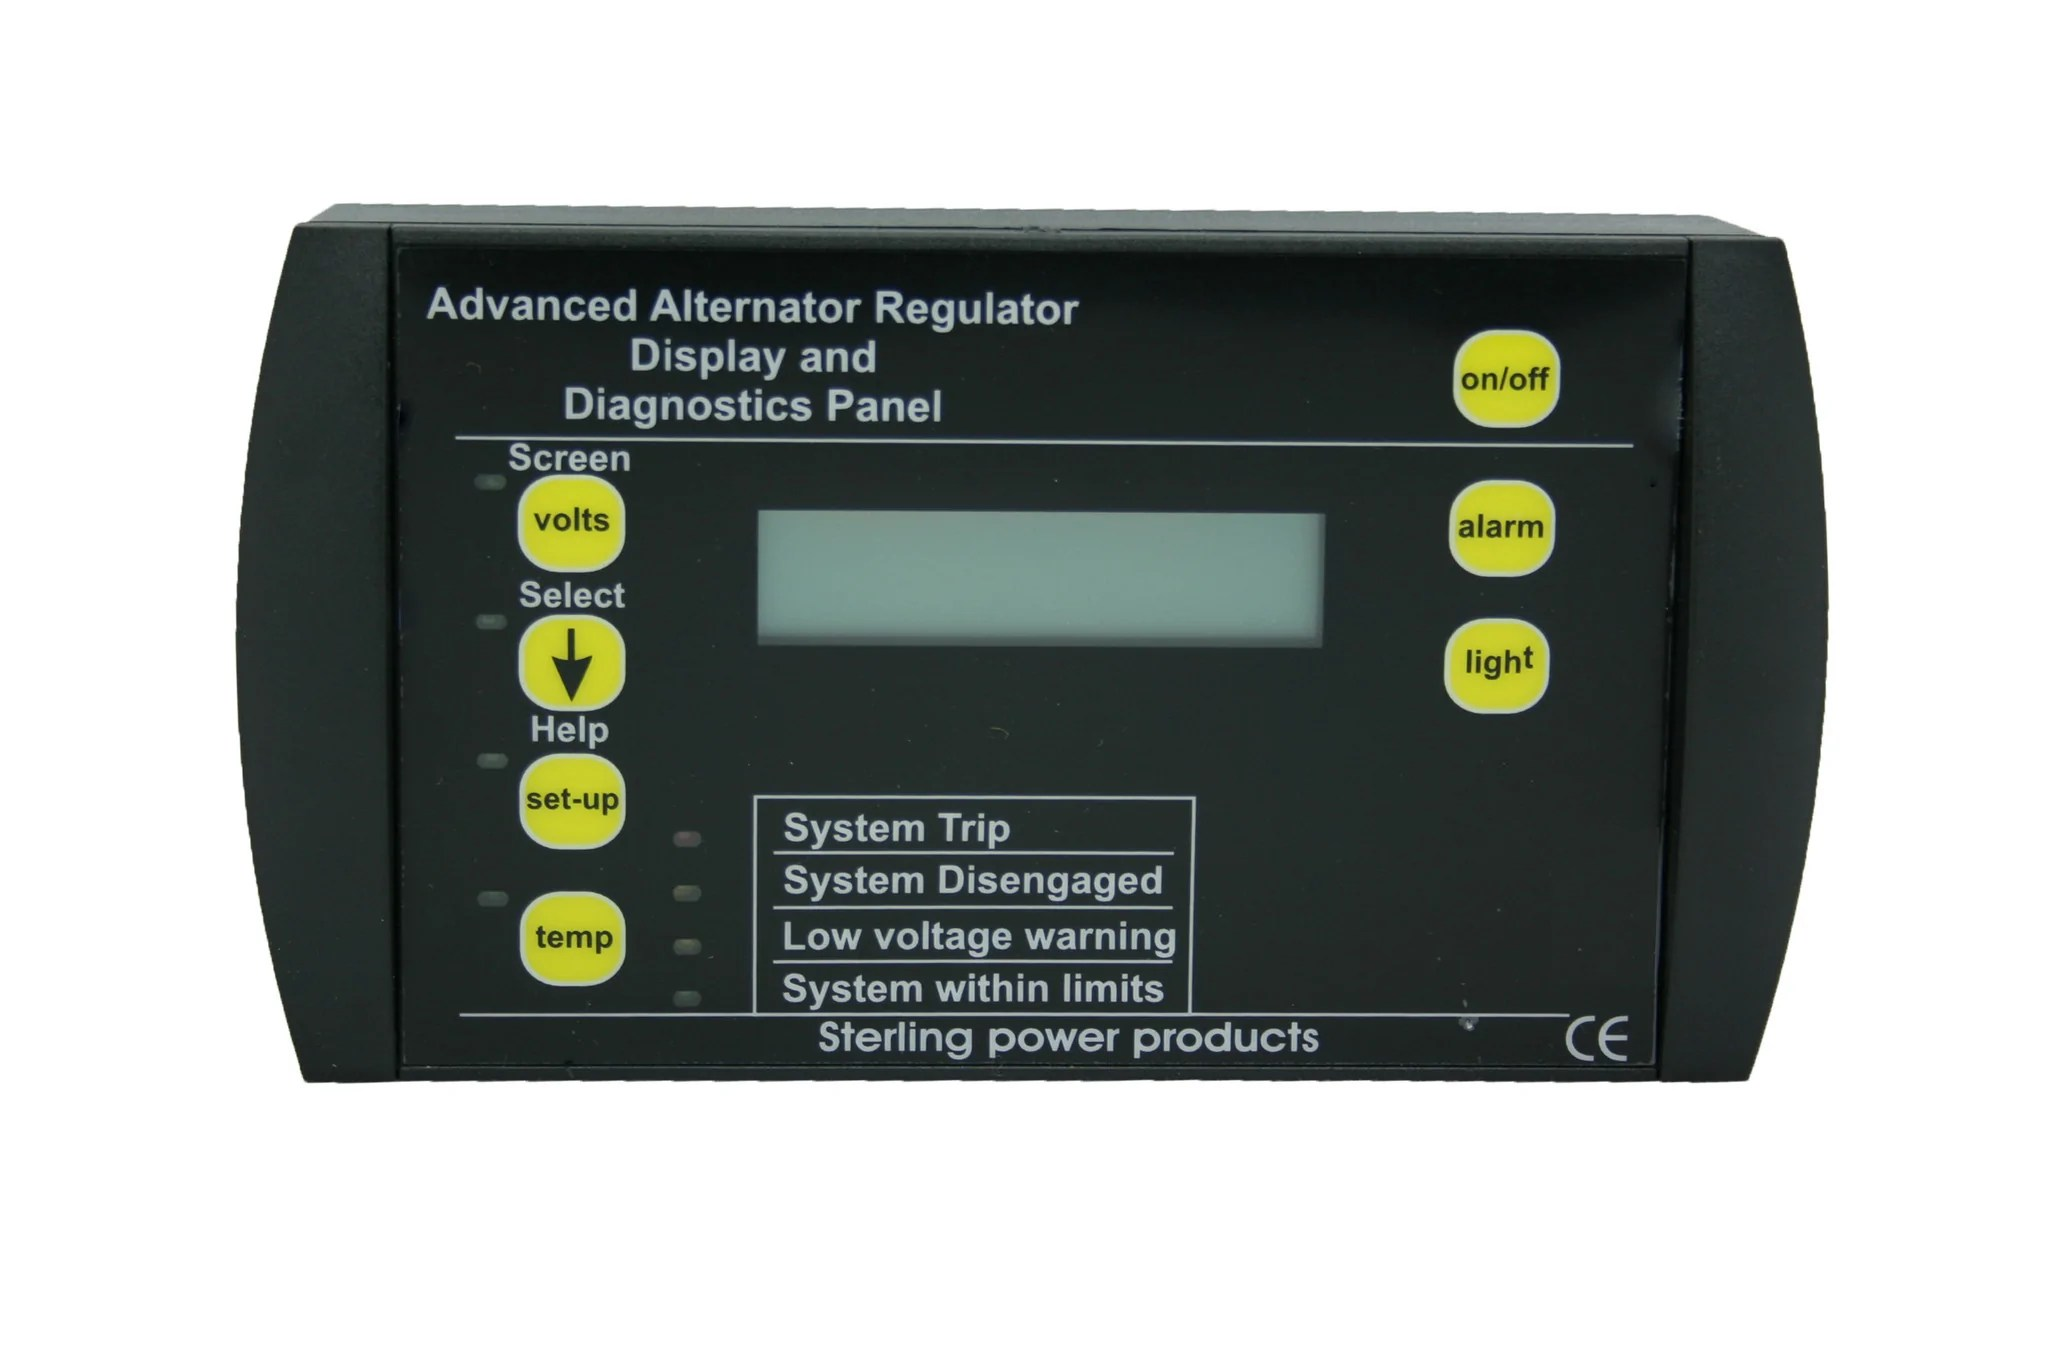 medium resolution of  advanced digital alternator regulator pro reg d dw pdar pdarw remote control